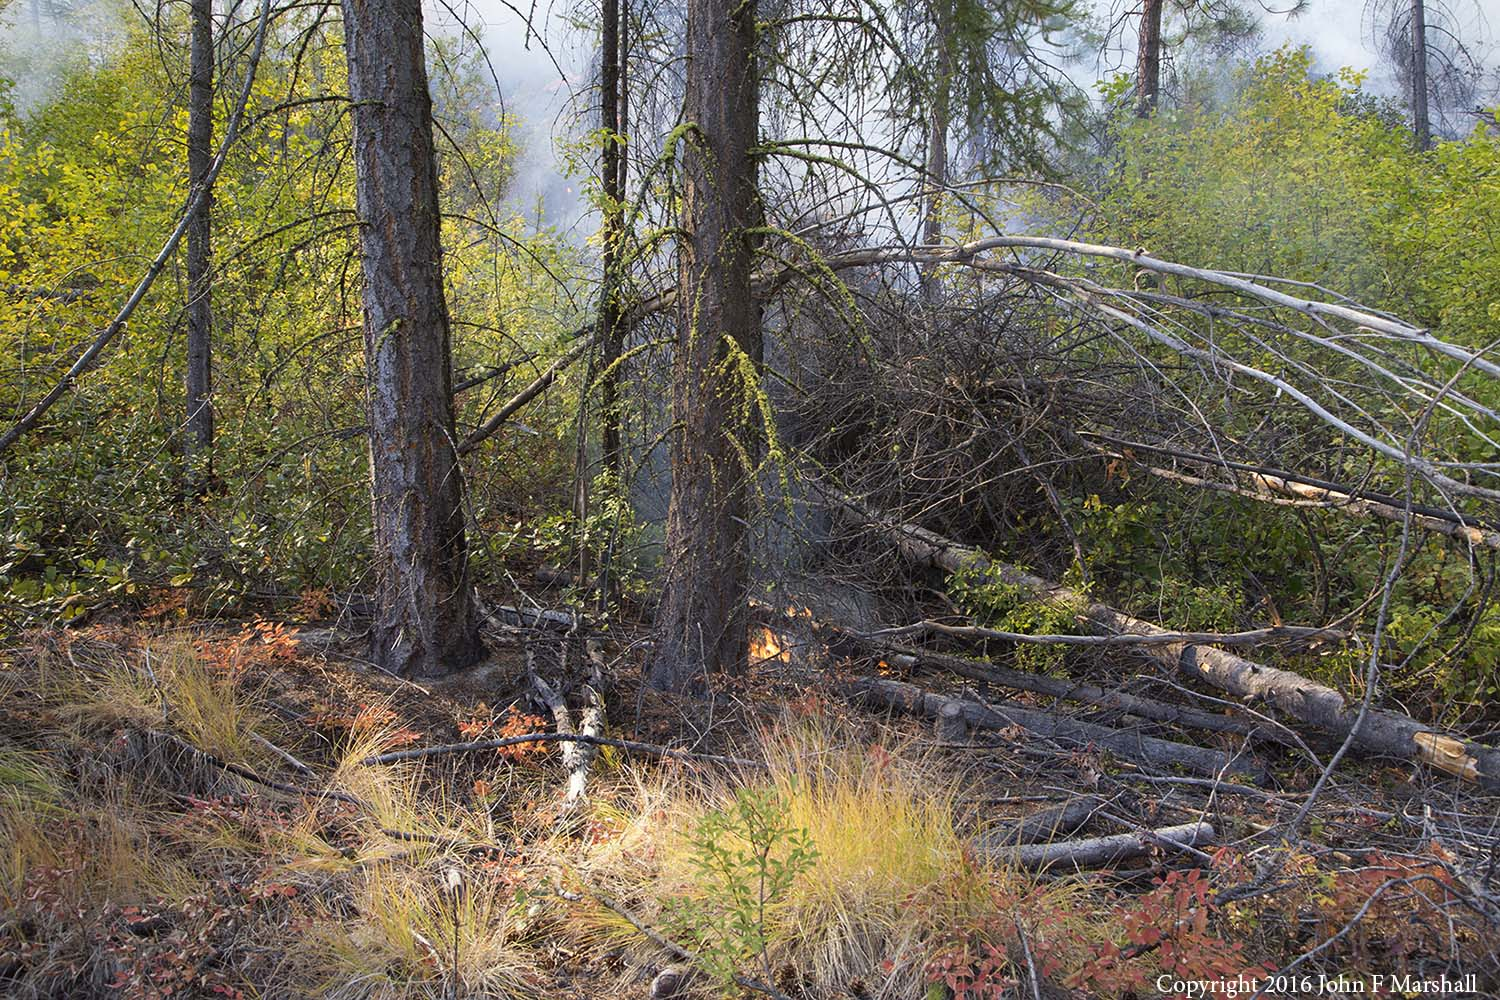 A tree killed many years ago is about to be consumed in fire.  Periodic fires clean up the woods and prevent worse fires.